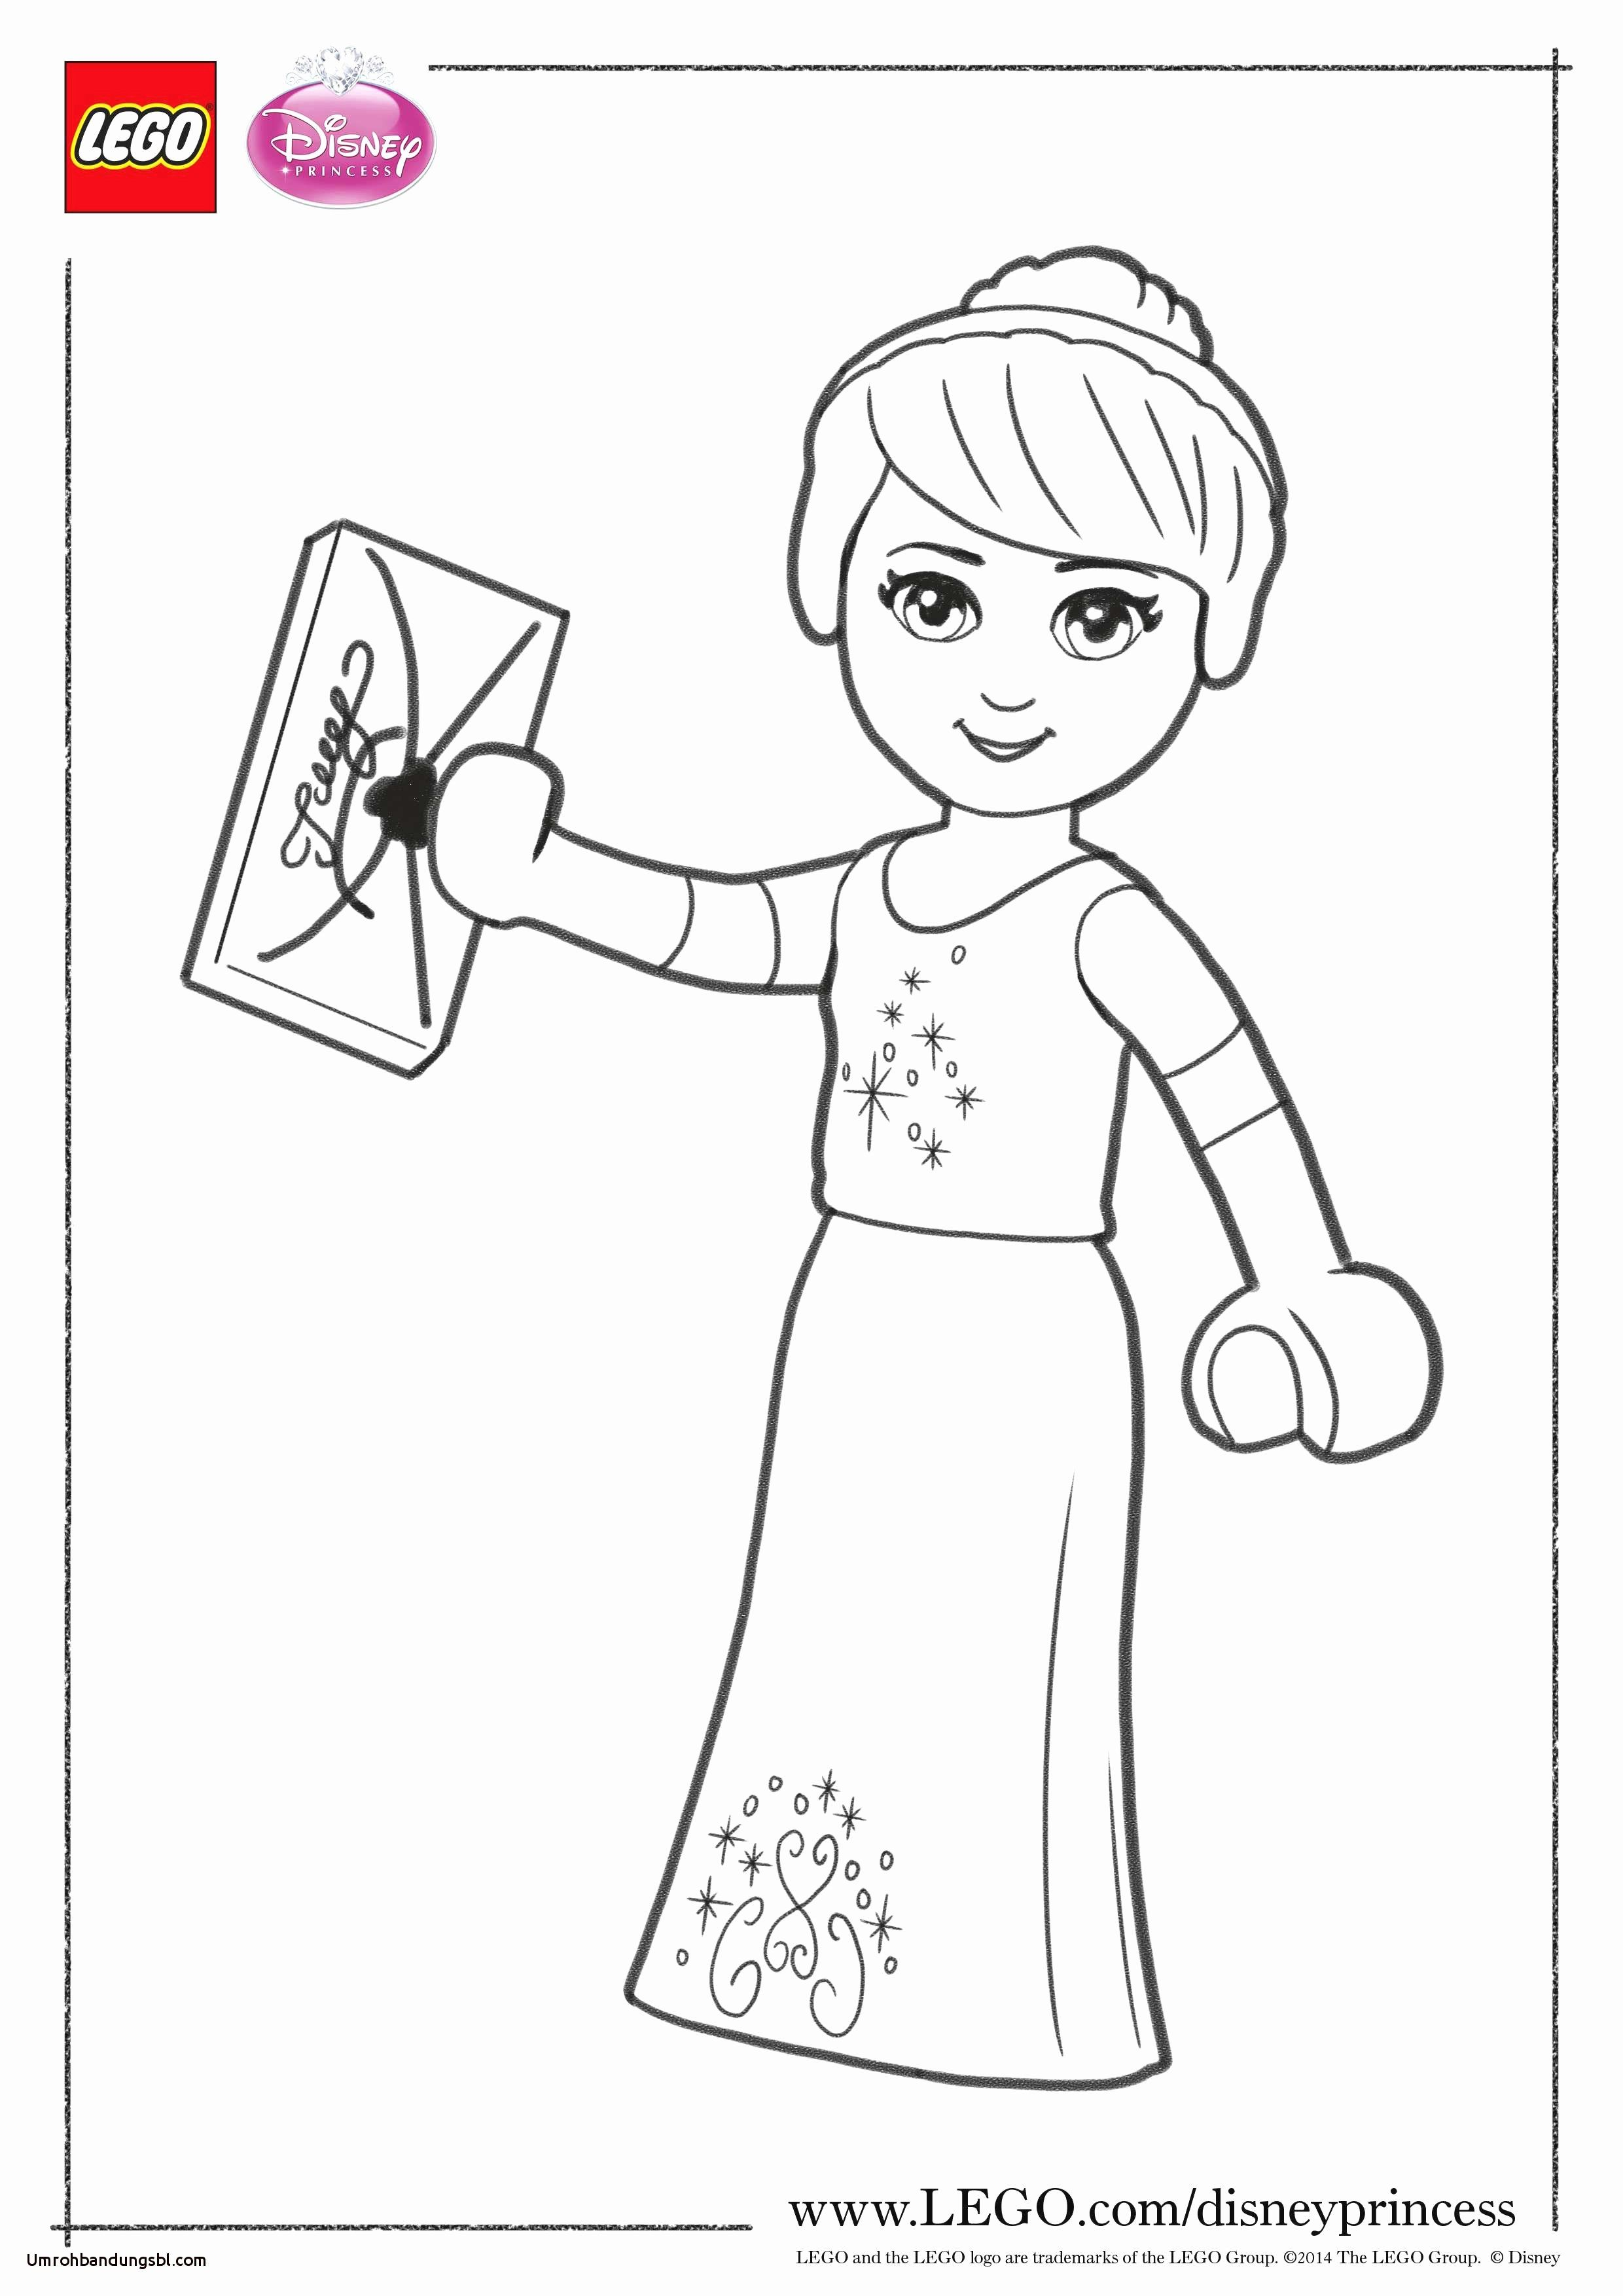 Disney Up Coloring Pages Lovely 53 Inspirational Lego Coloring Book